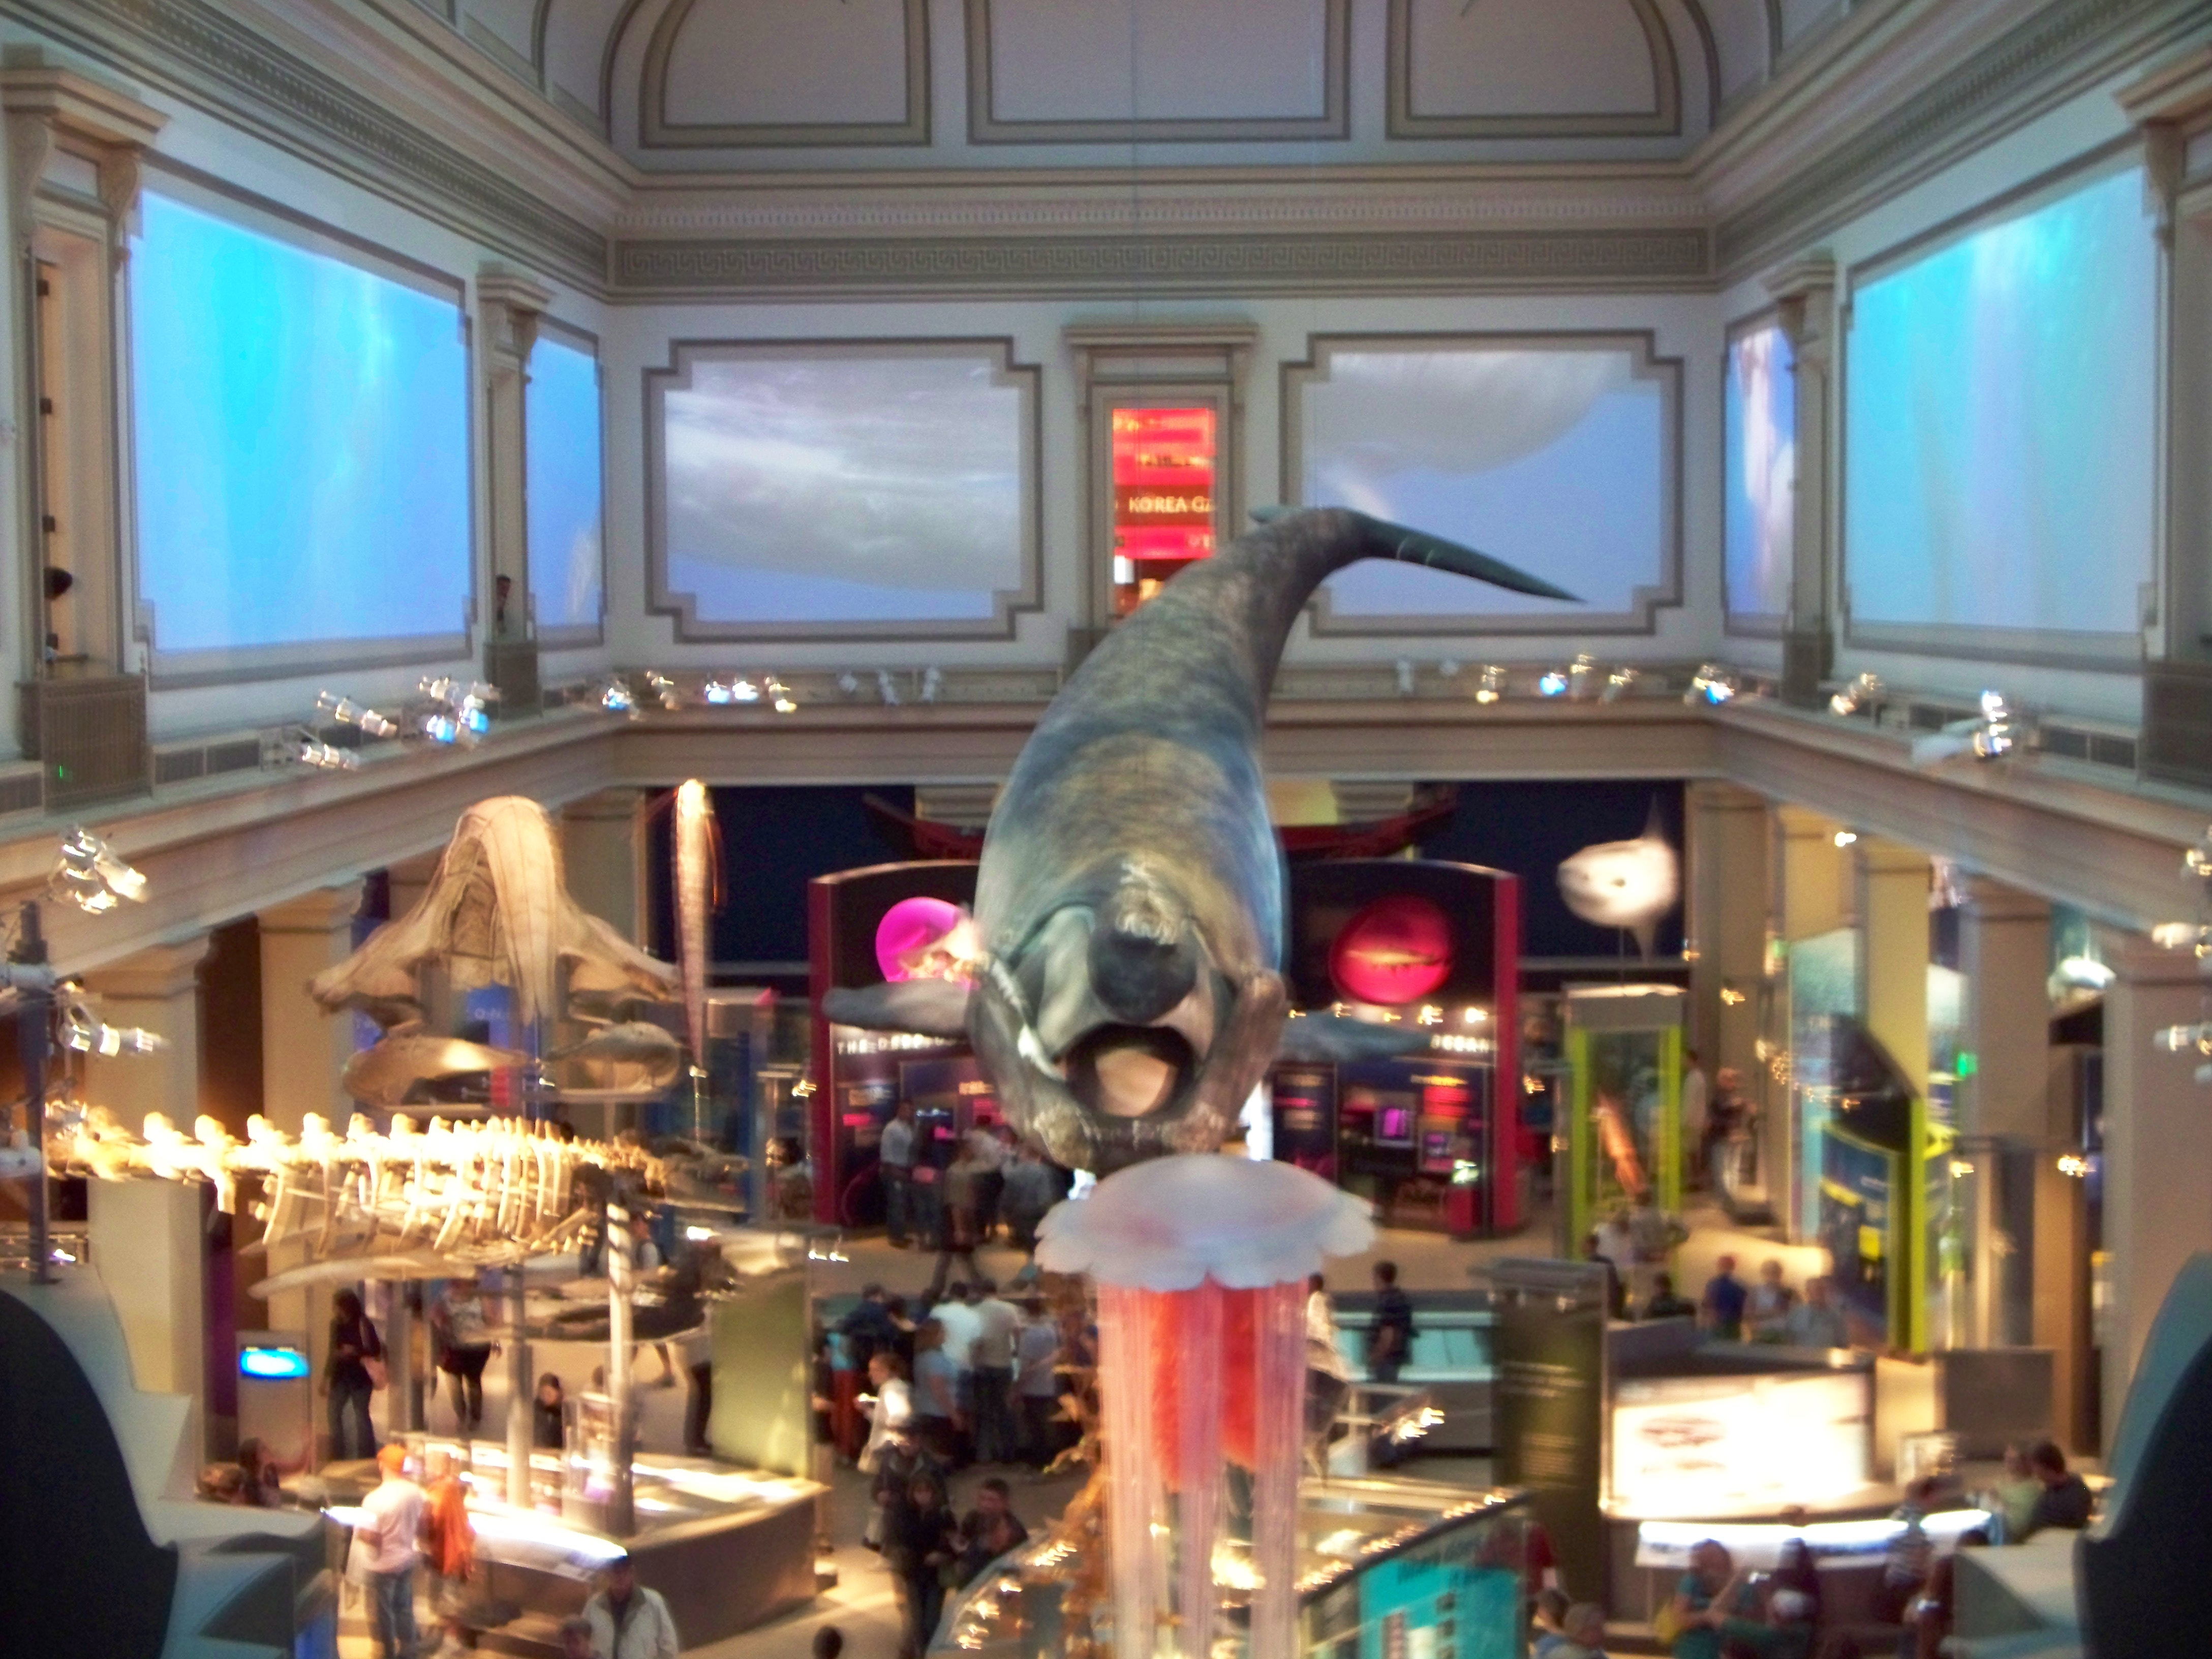 Blue Whale room at Nat His Museum